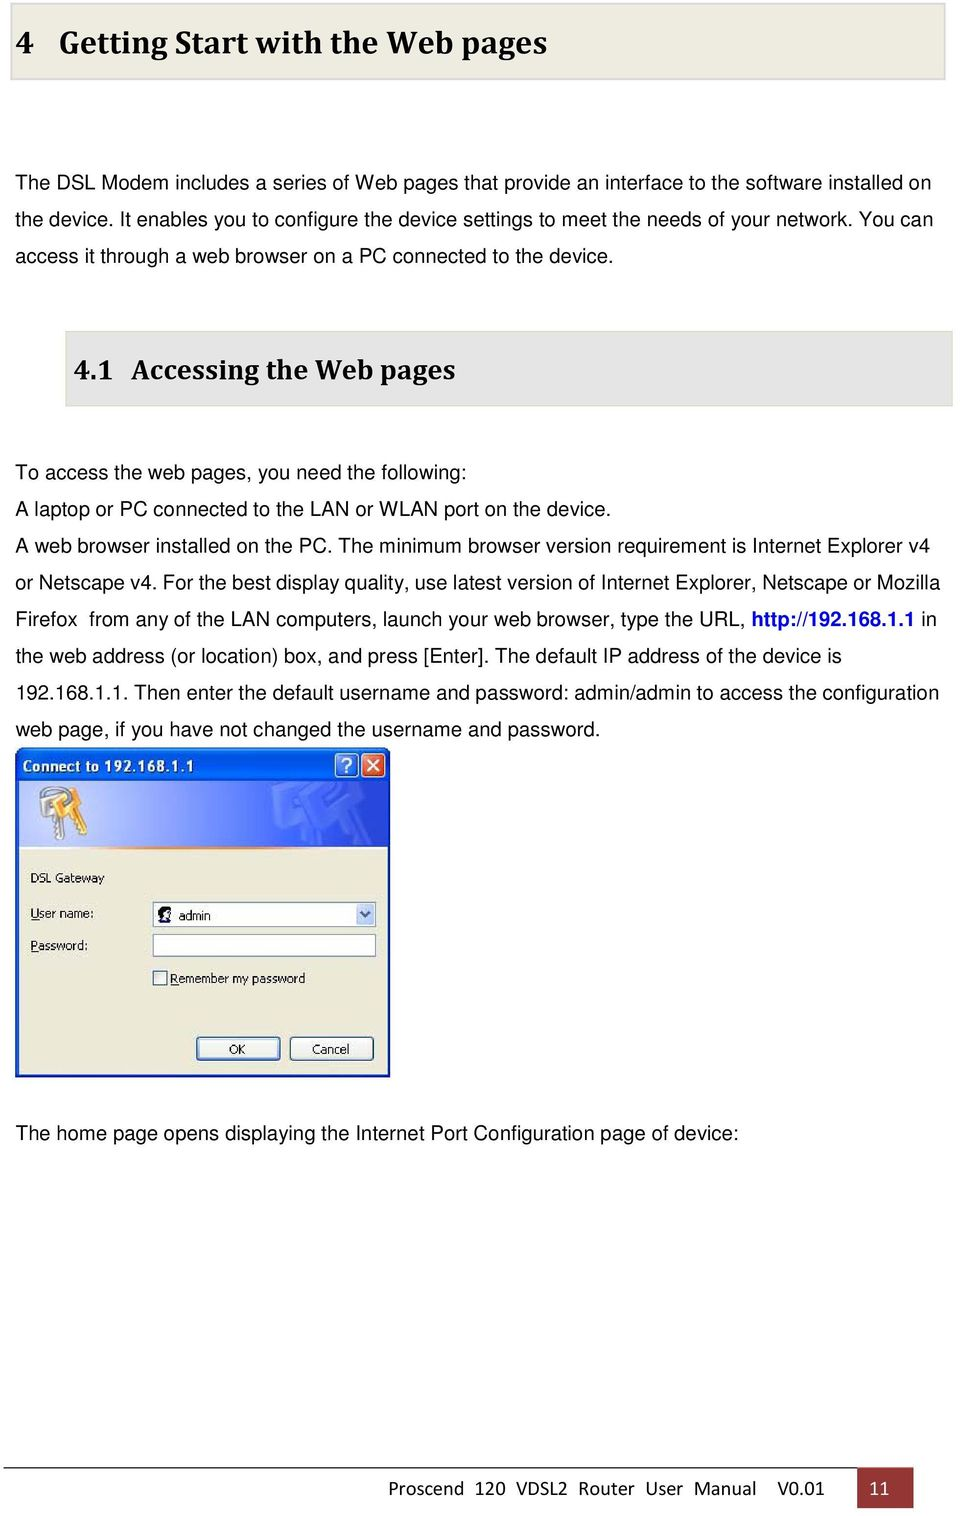 1 Accessing the Web pages To access the web pages, you need the following: A laptop or PC connected to the LAN or WLAN port on the device. A web browser installed on the PC.